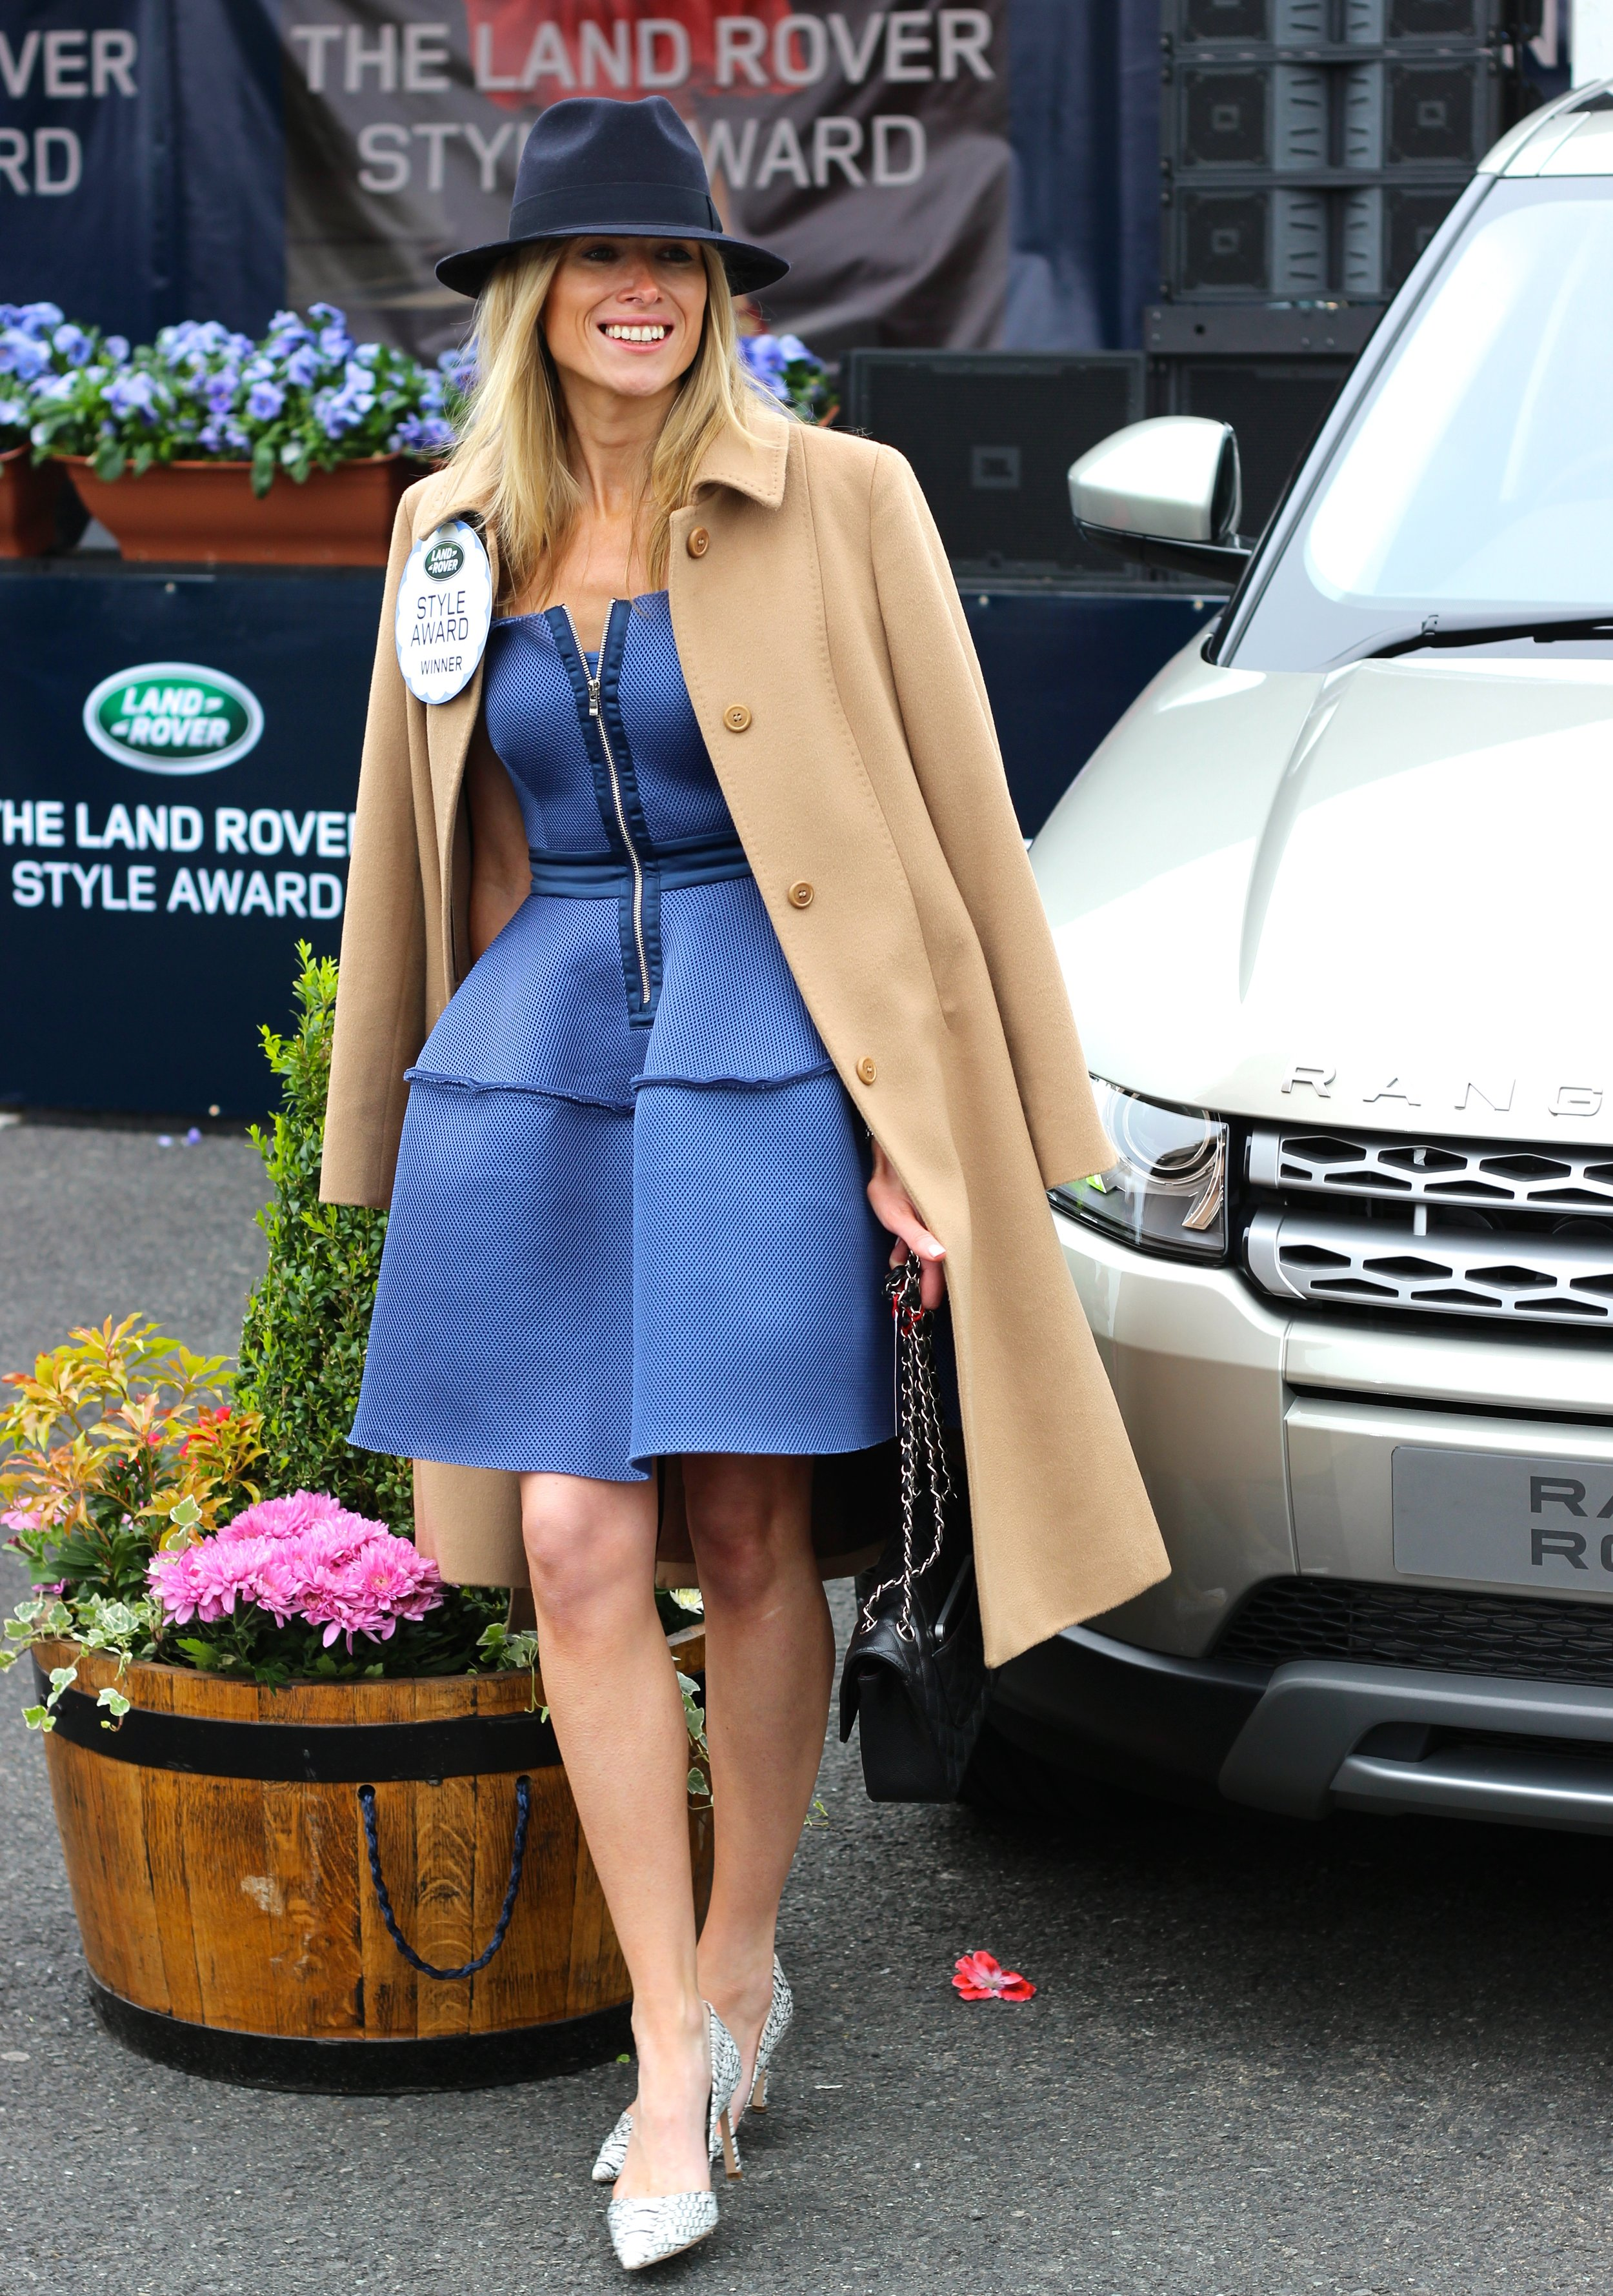 Punchestown Land Rover Style Award 2014